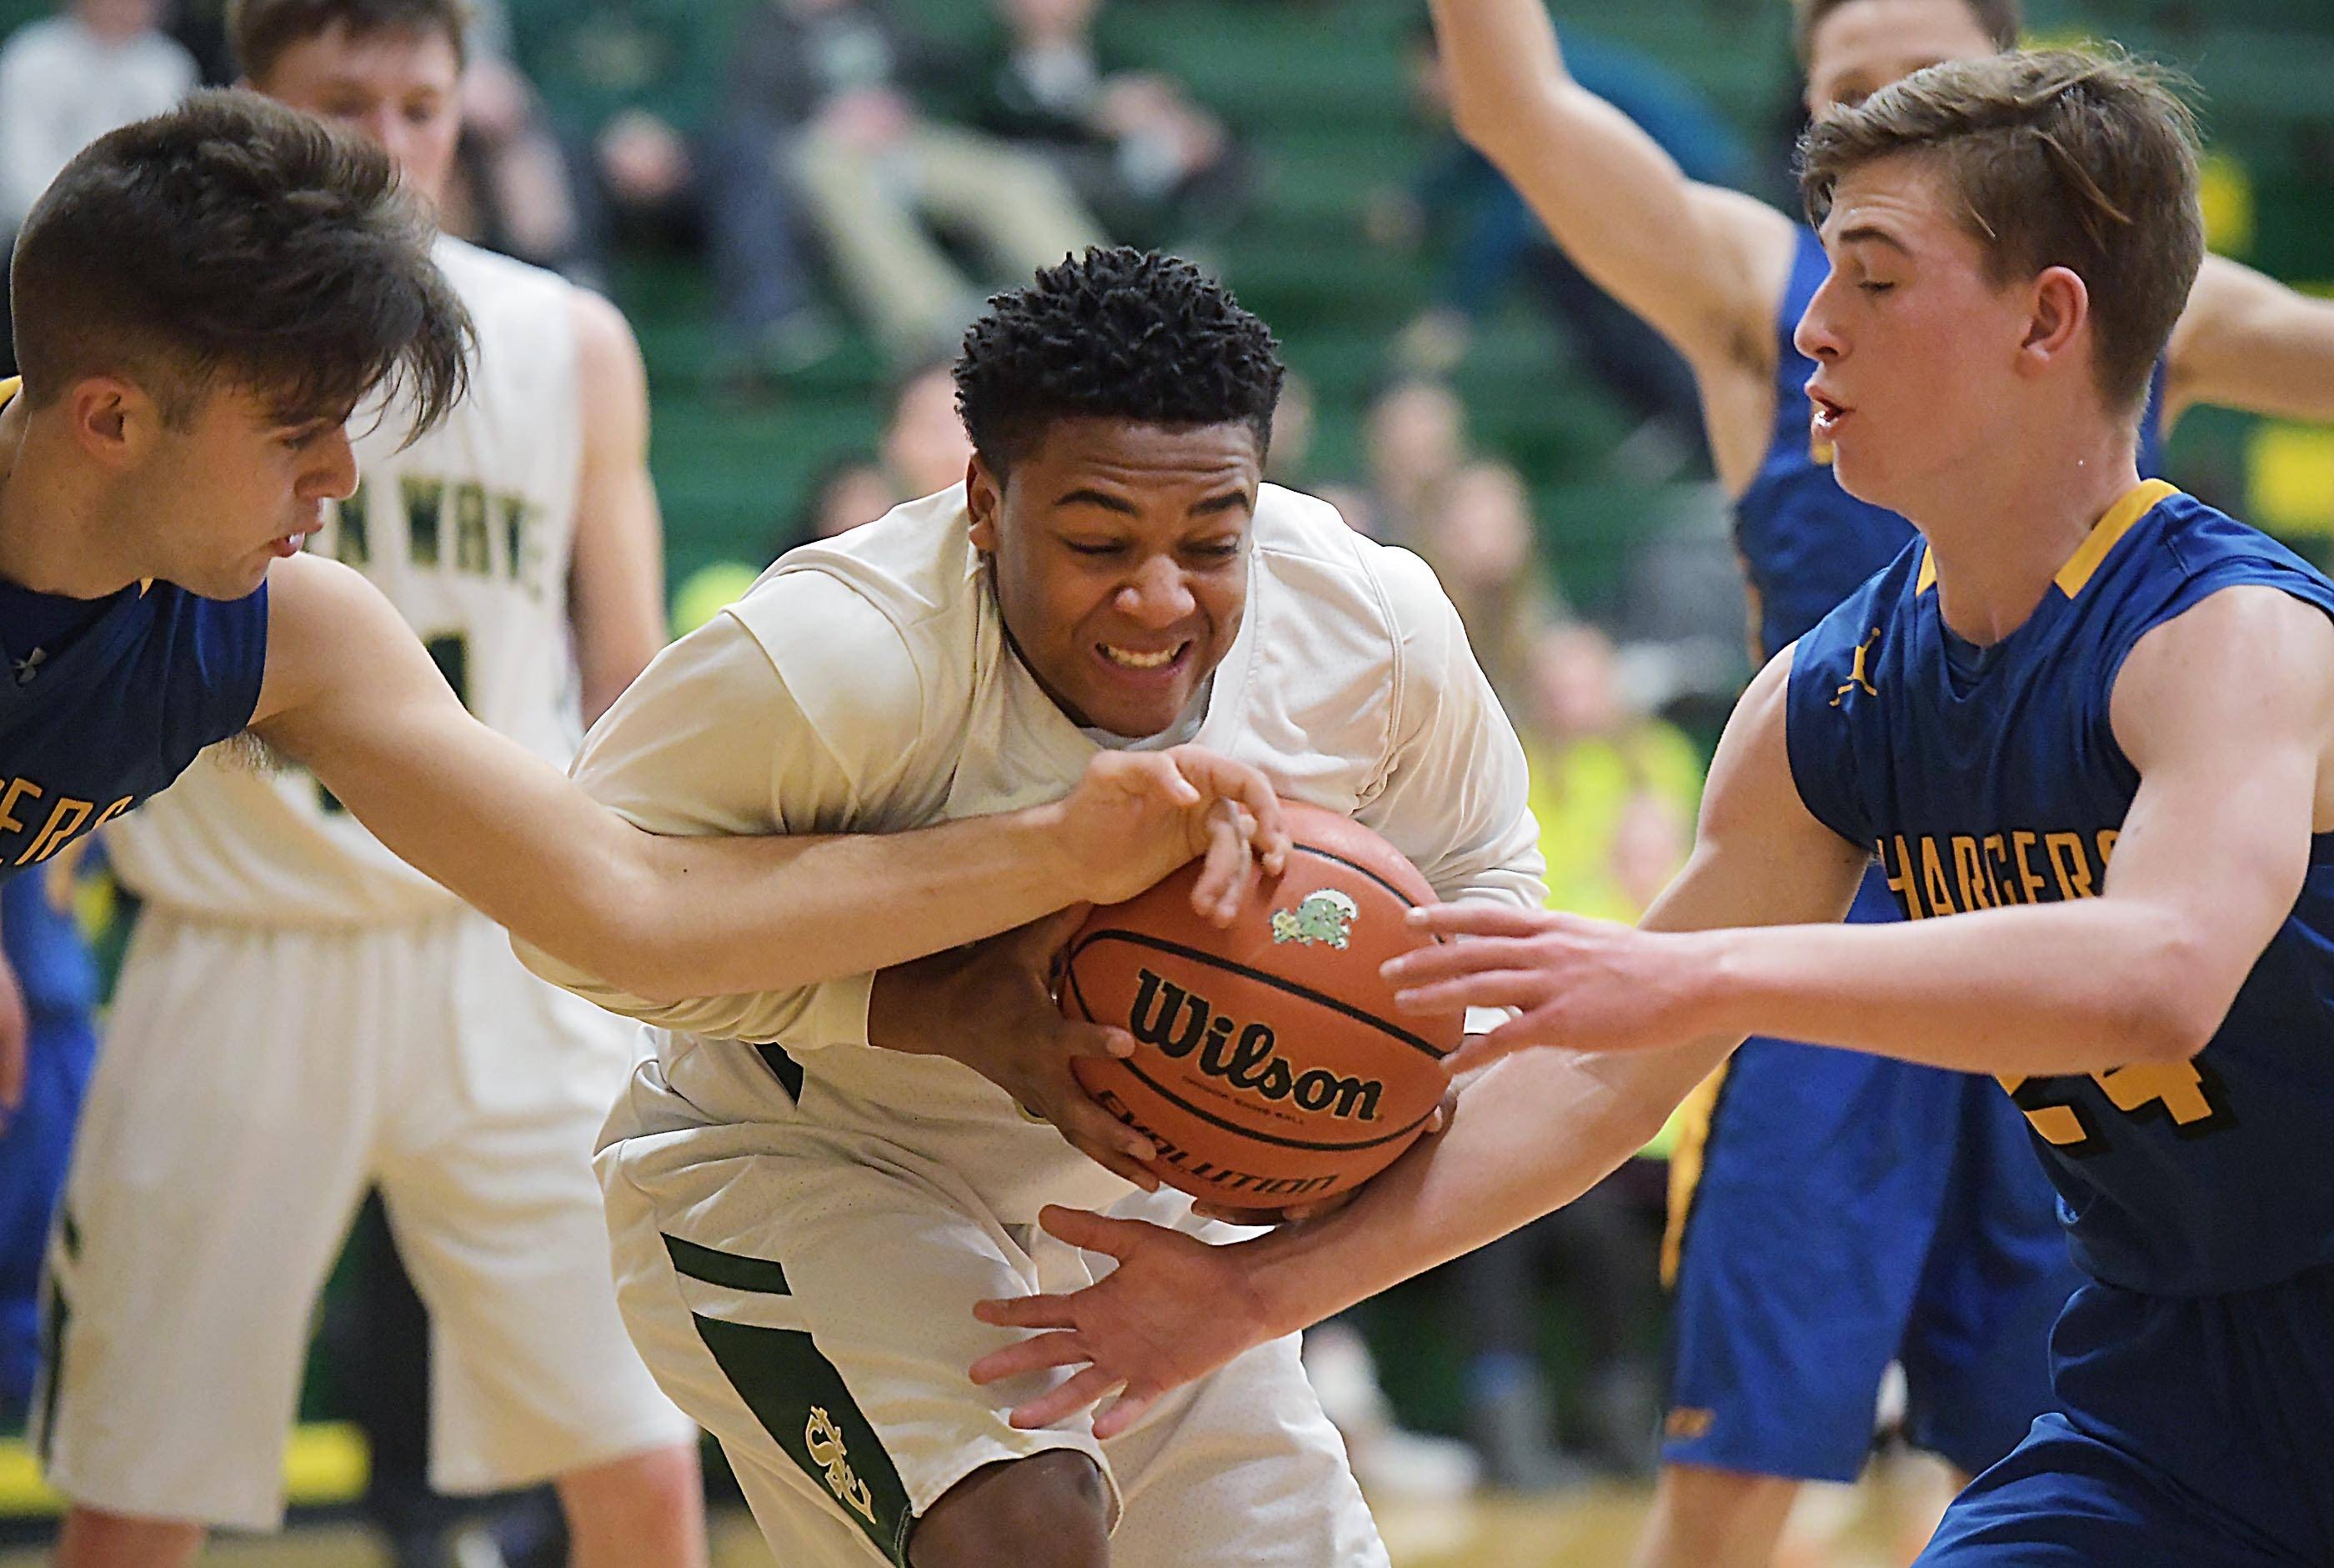 St. Edward's Sidney Muhammad struggles for control as Aurora Central Catholic's Dru Ingraham and Cameron Pedersen, right, pressure him Wednesday in a boys basketball game in Elgin.